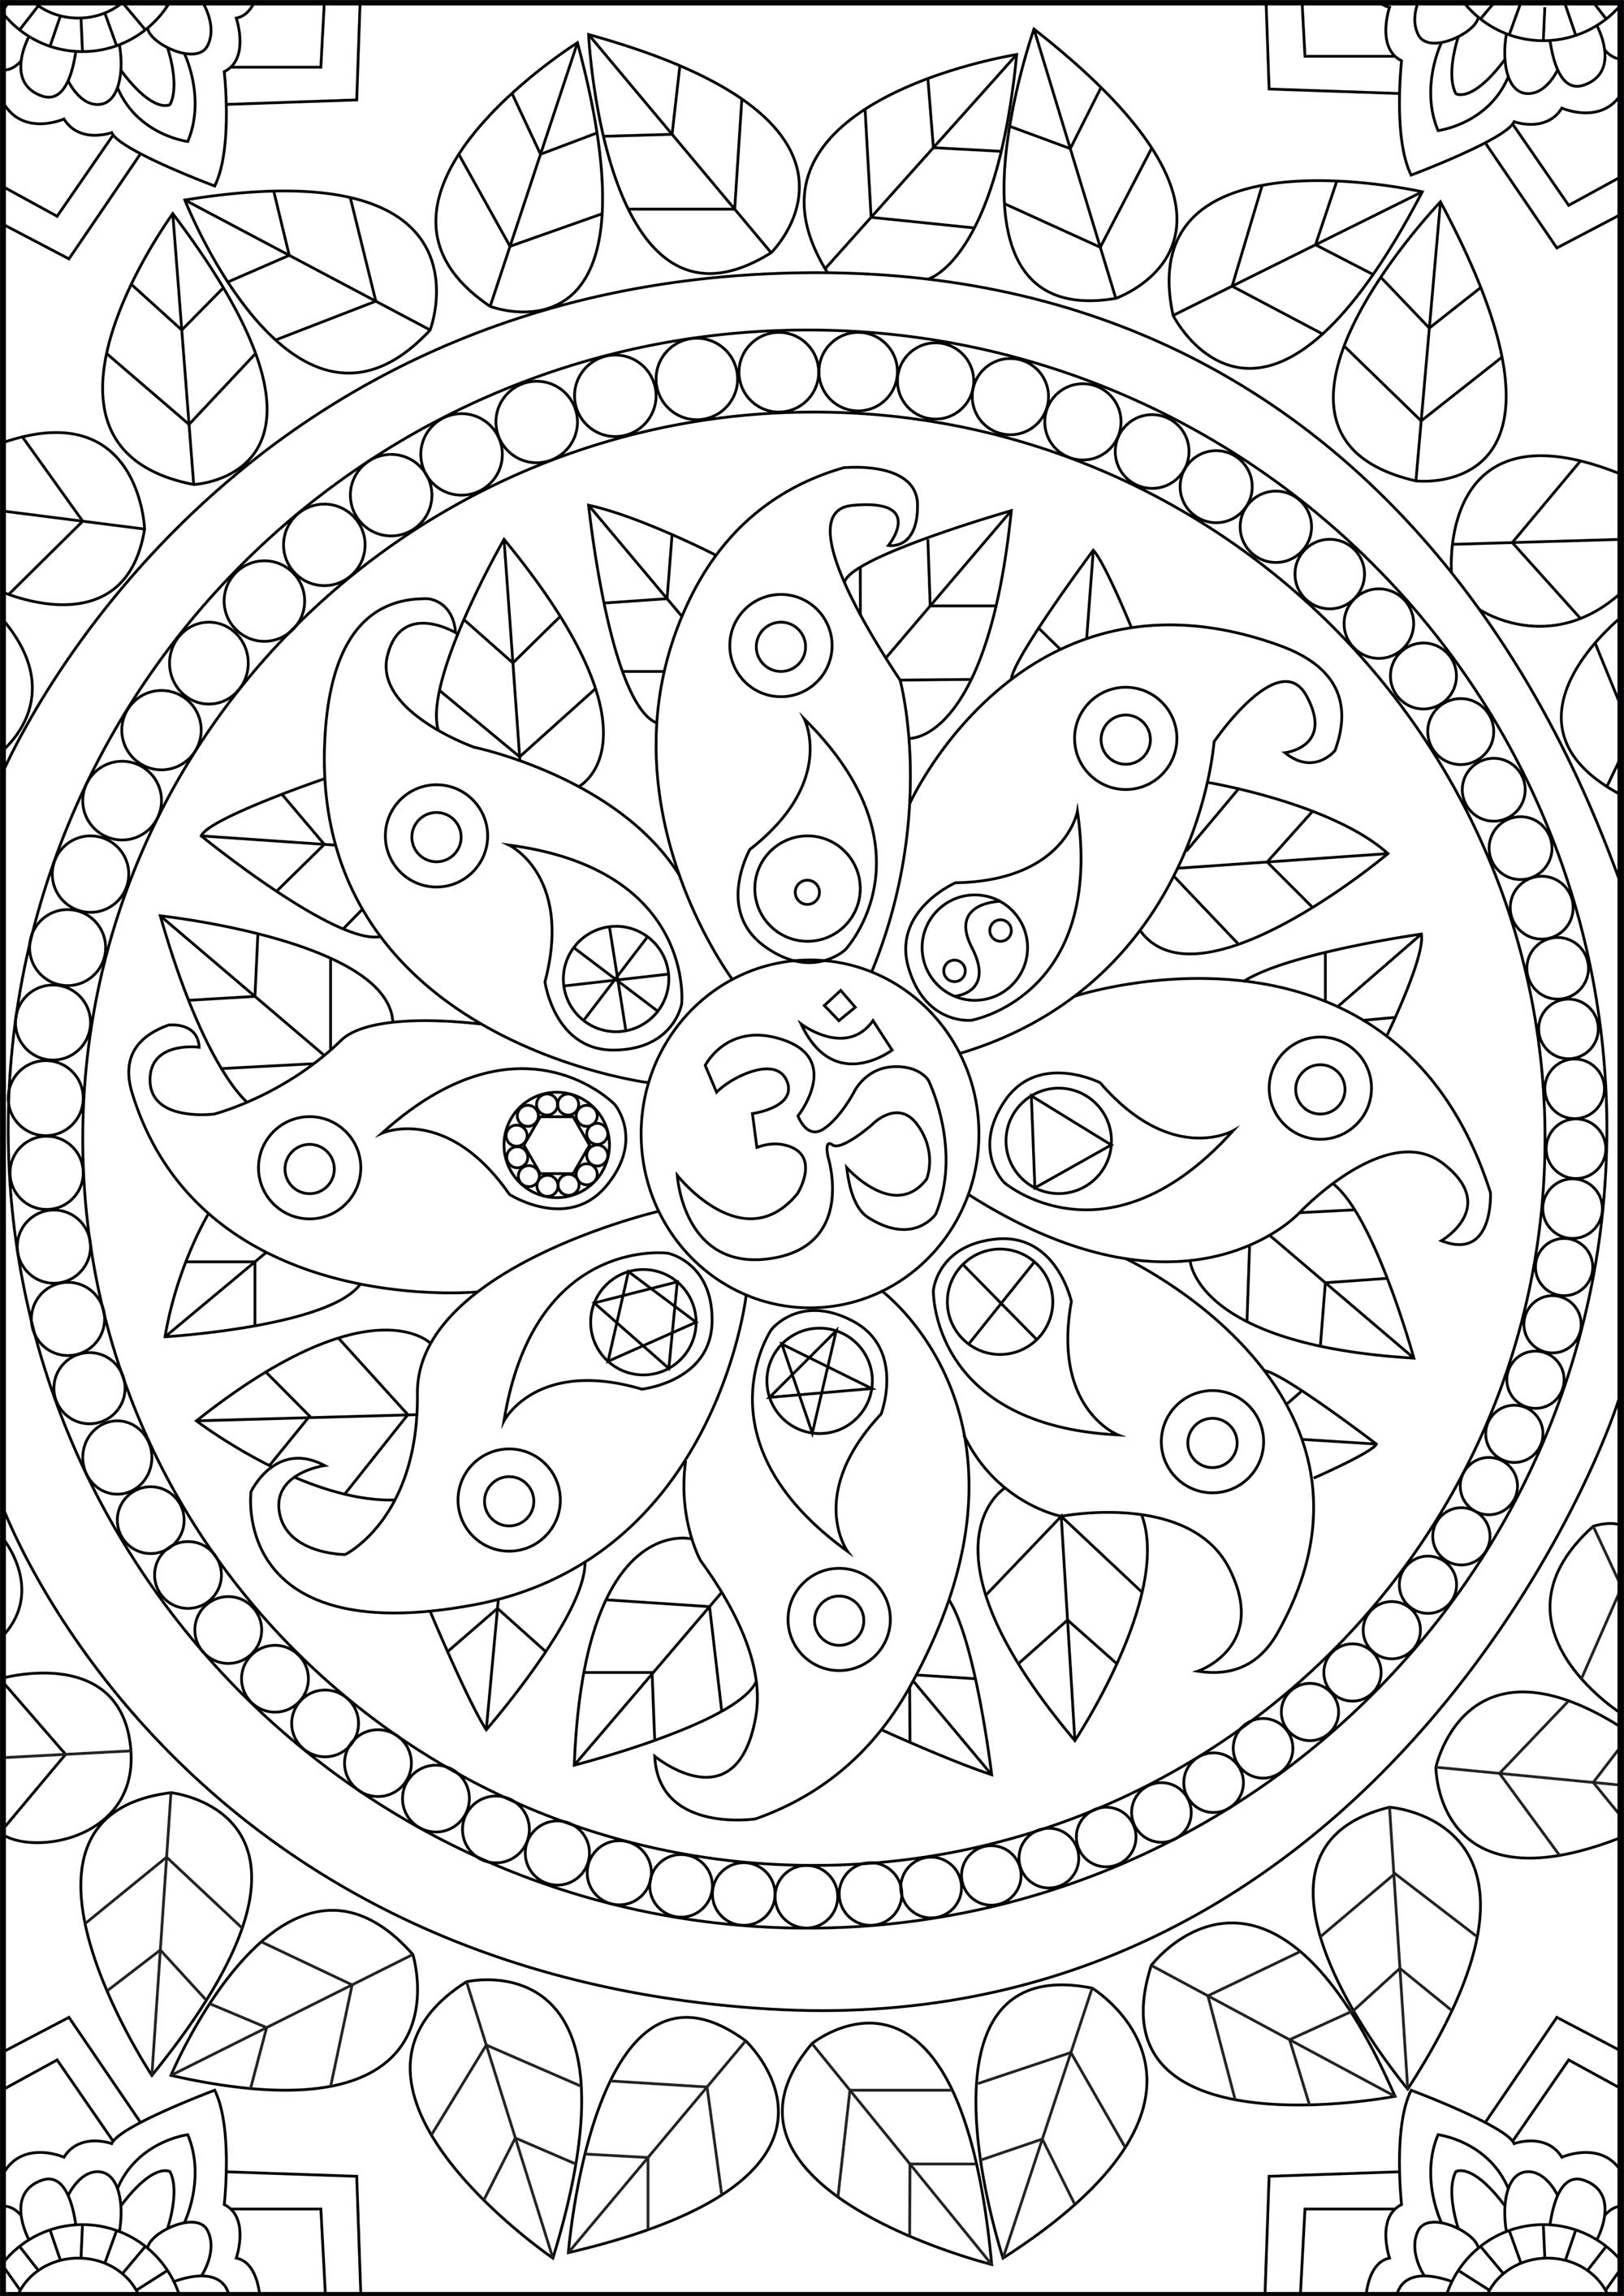 Find inner peace with this coloring page featuring various Zen symbols, including the 'Om'. 'Om' is a sacred sound and a spiritual symbol in Hinduism, that signifies the essence of the ultimate reality, consciousness or Atman. It is a syllable that is chanted either independently or before a mantra in Hinduism, Buddhism, and Jainism.